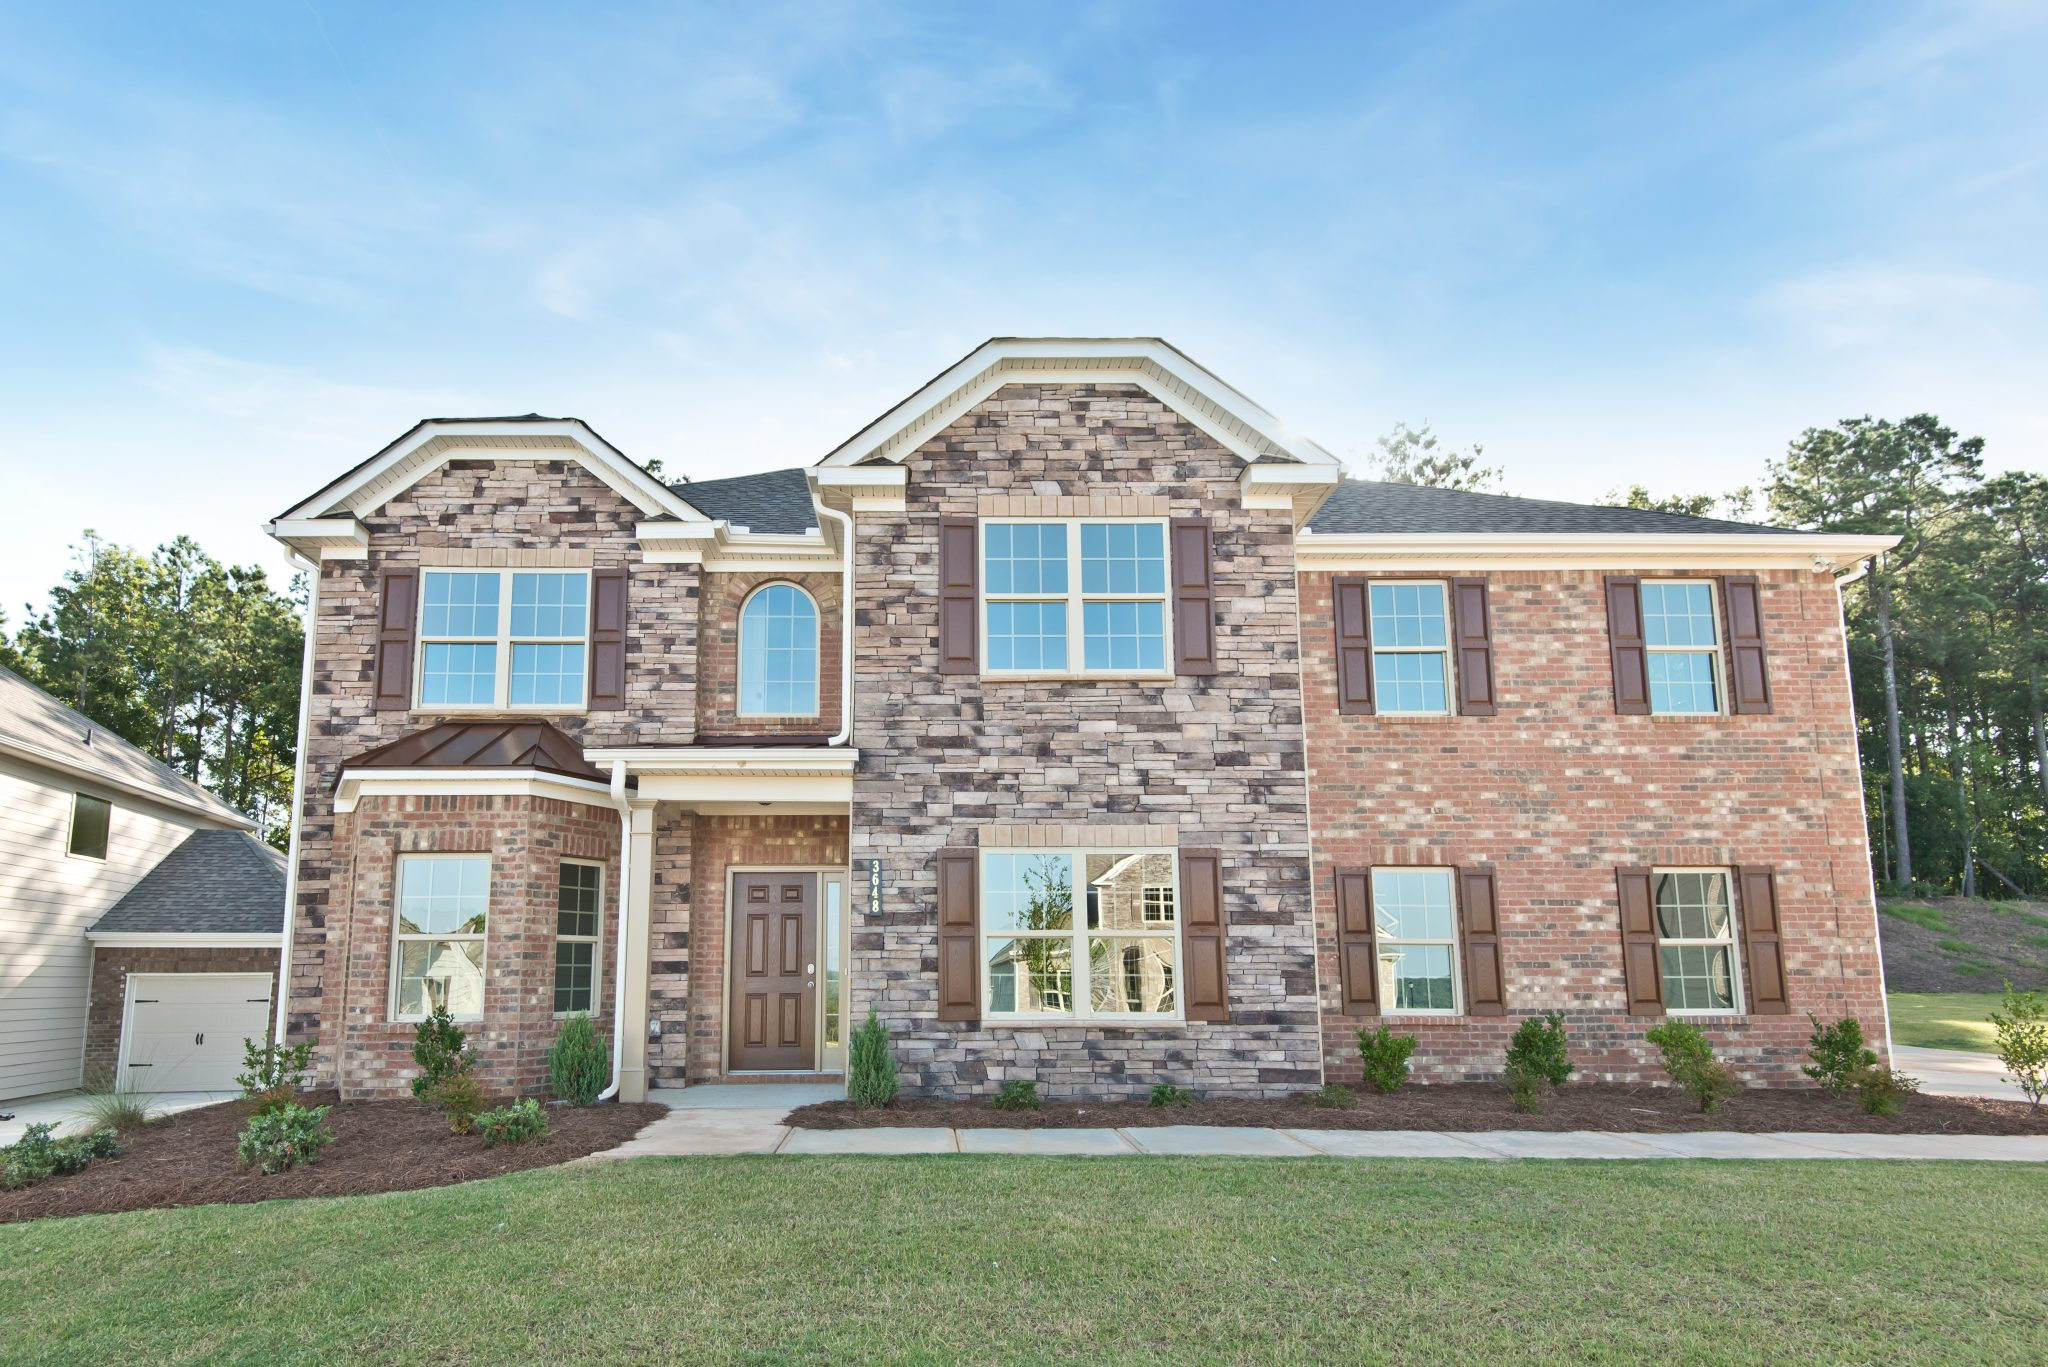 Grand Opening this month at Sandtown Estates - See the executive series of new homes available here.